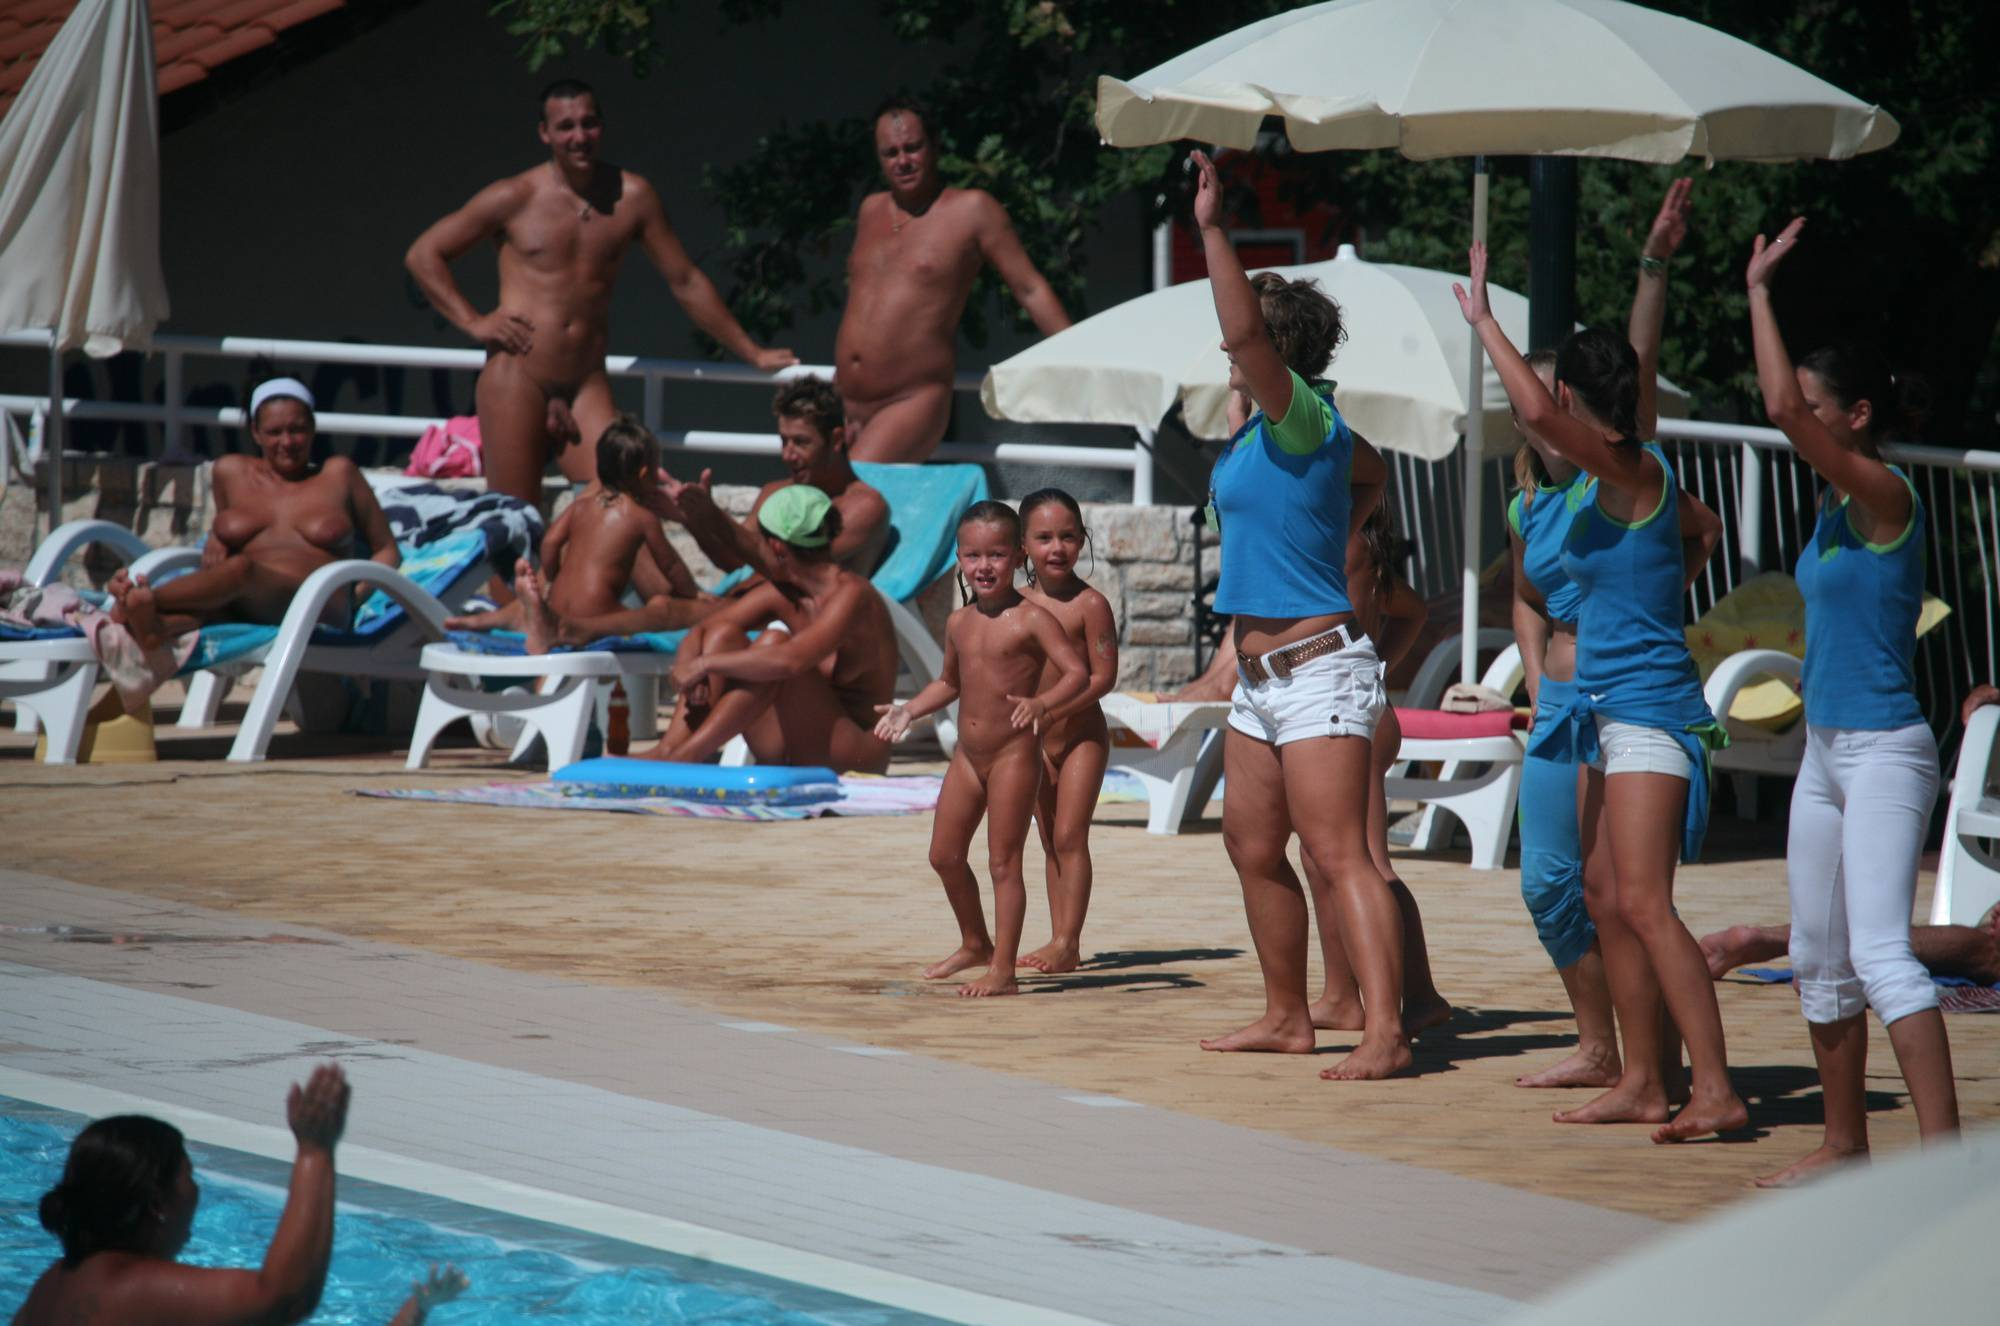 Nudist Photos Pool-Shore Group Exercise - 1